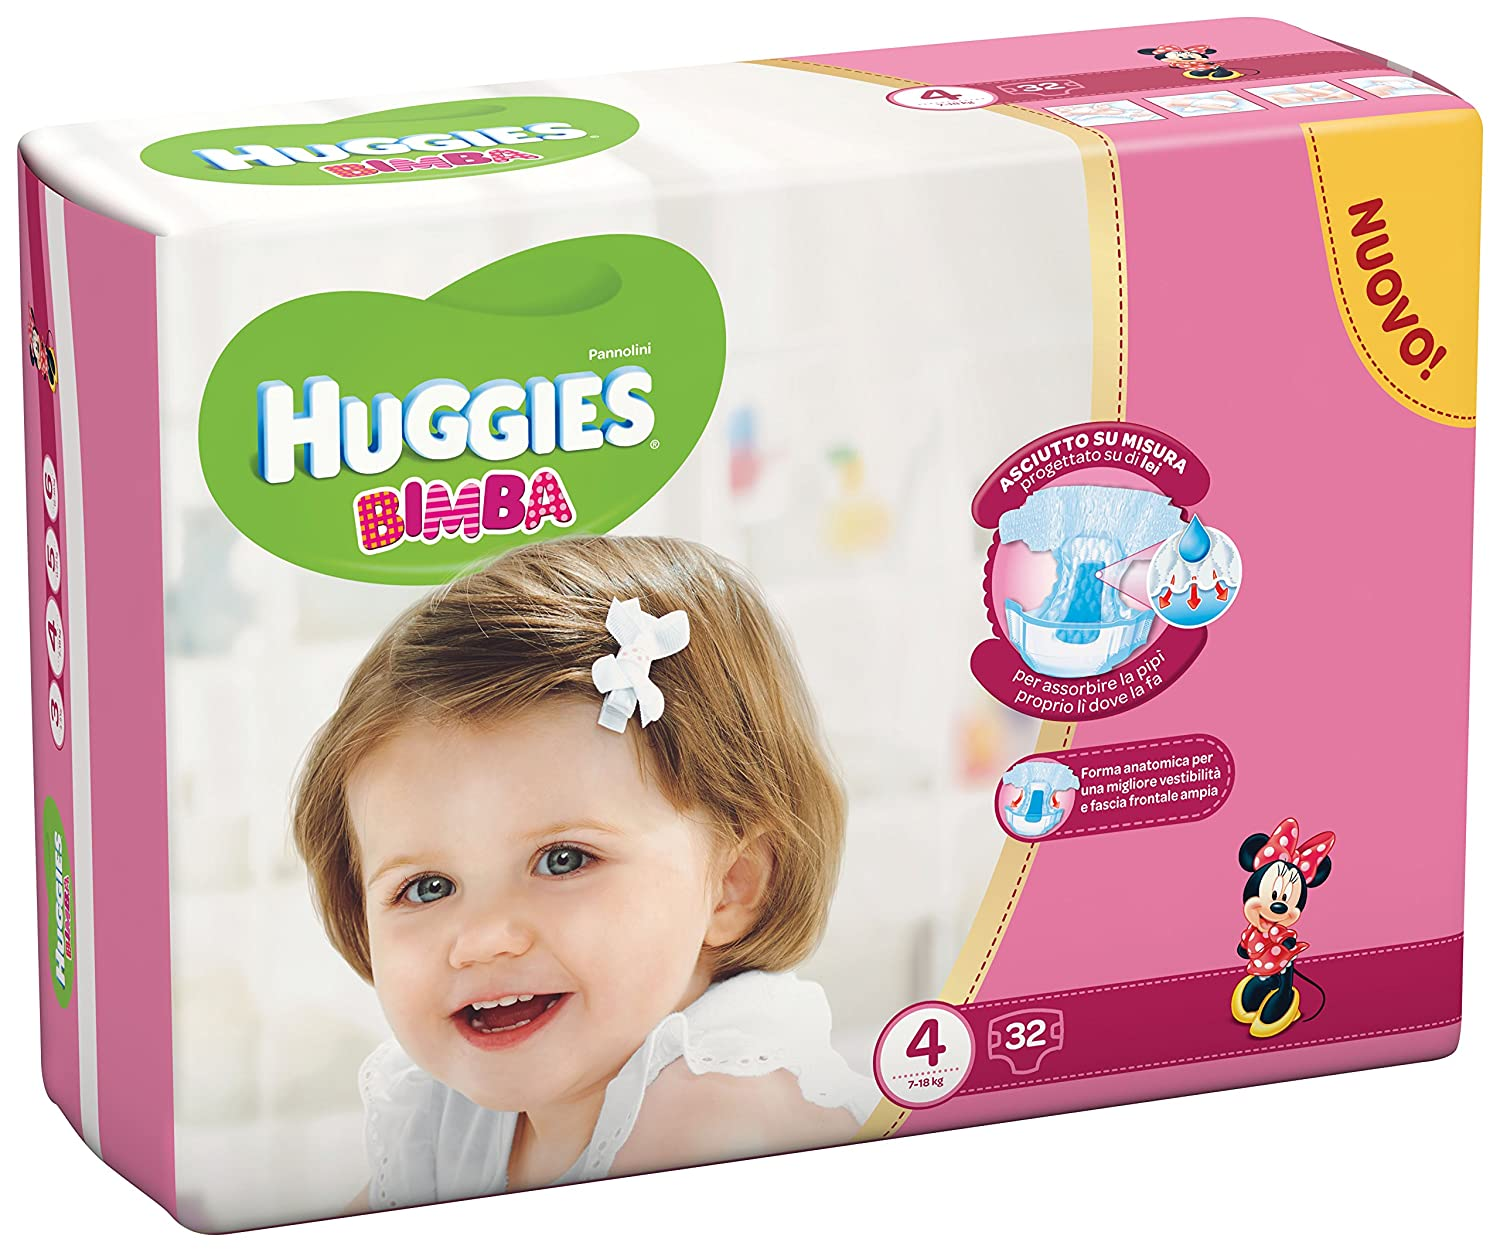 Huggies - Bimba - Nappies - Size 4 (7-18 kg) - 32 Nappies Kimberly Clark